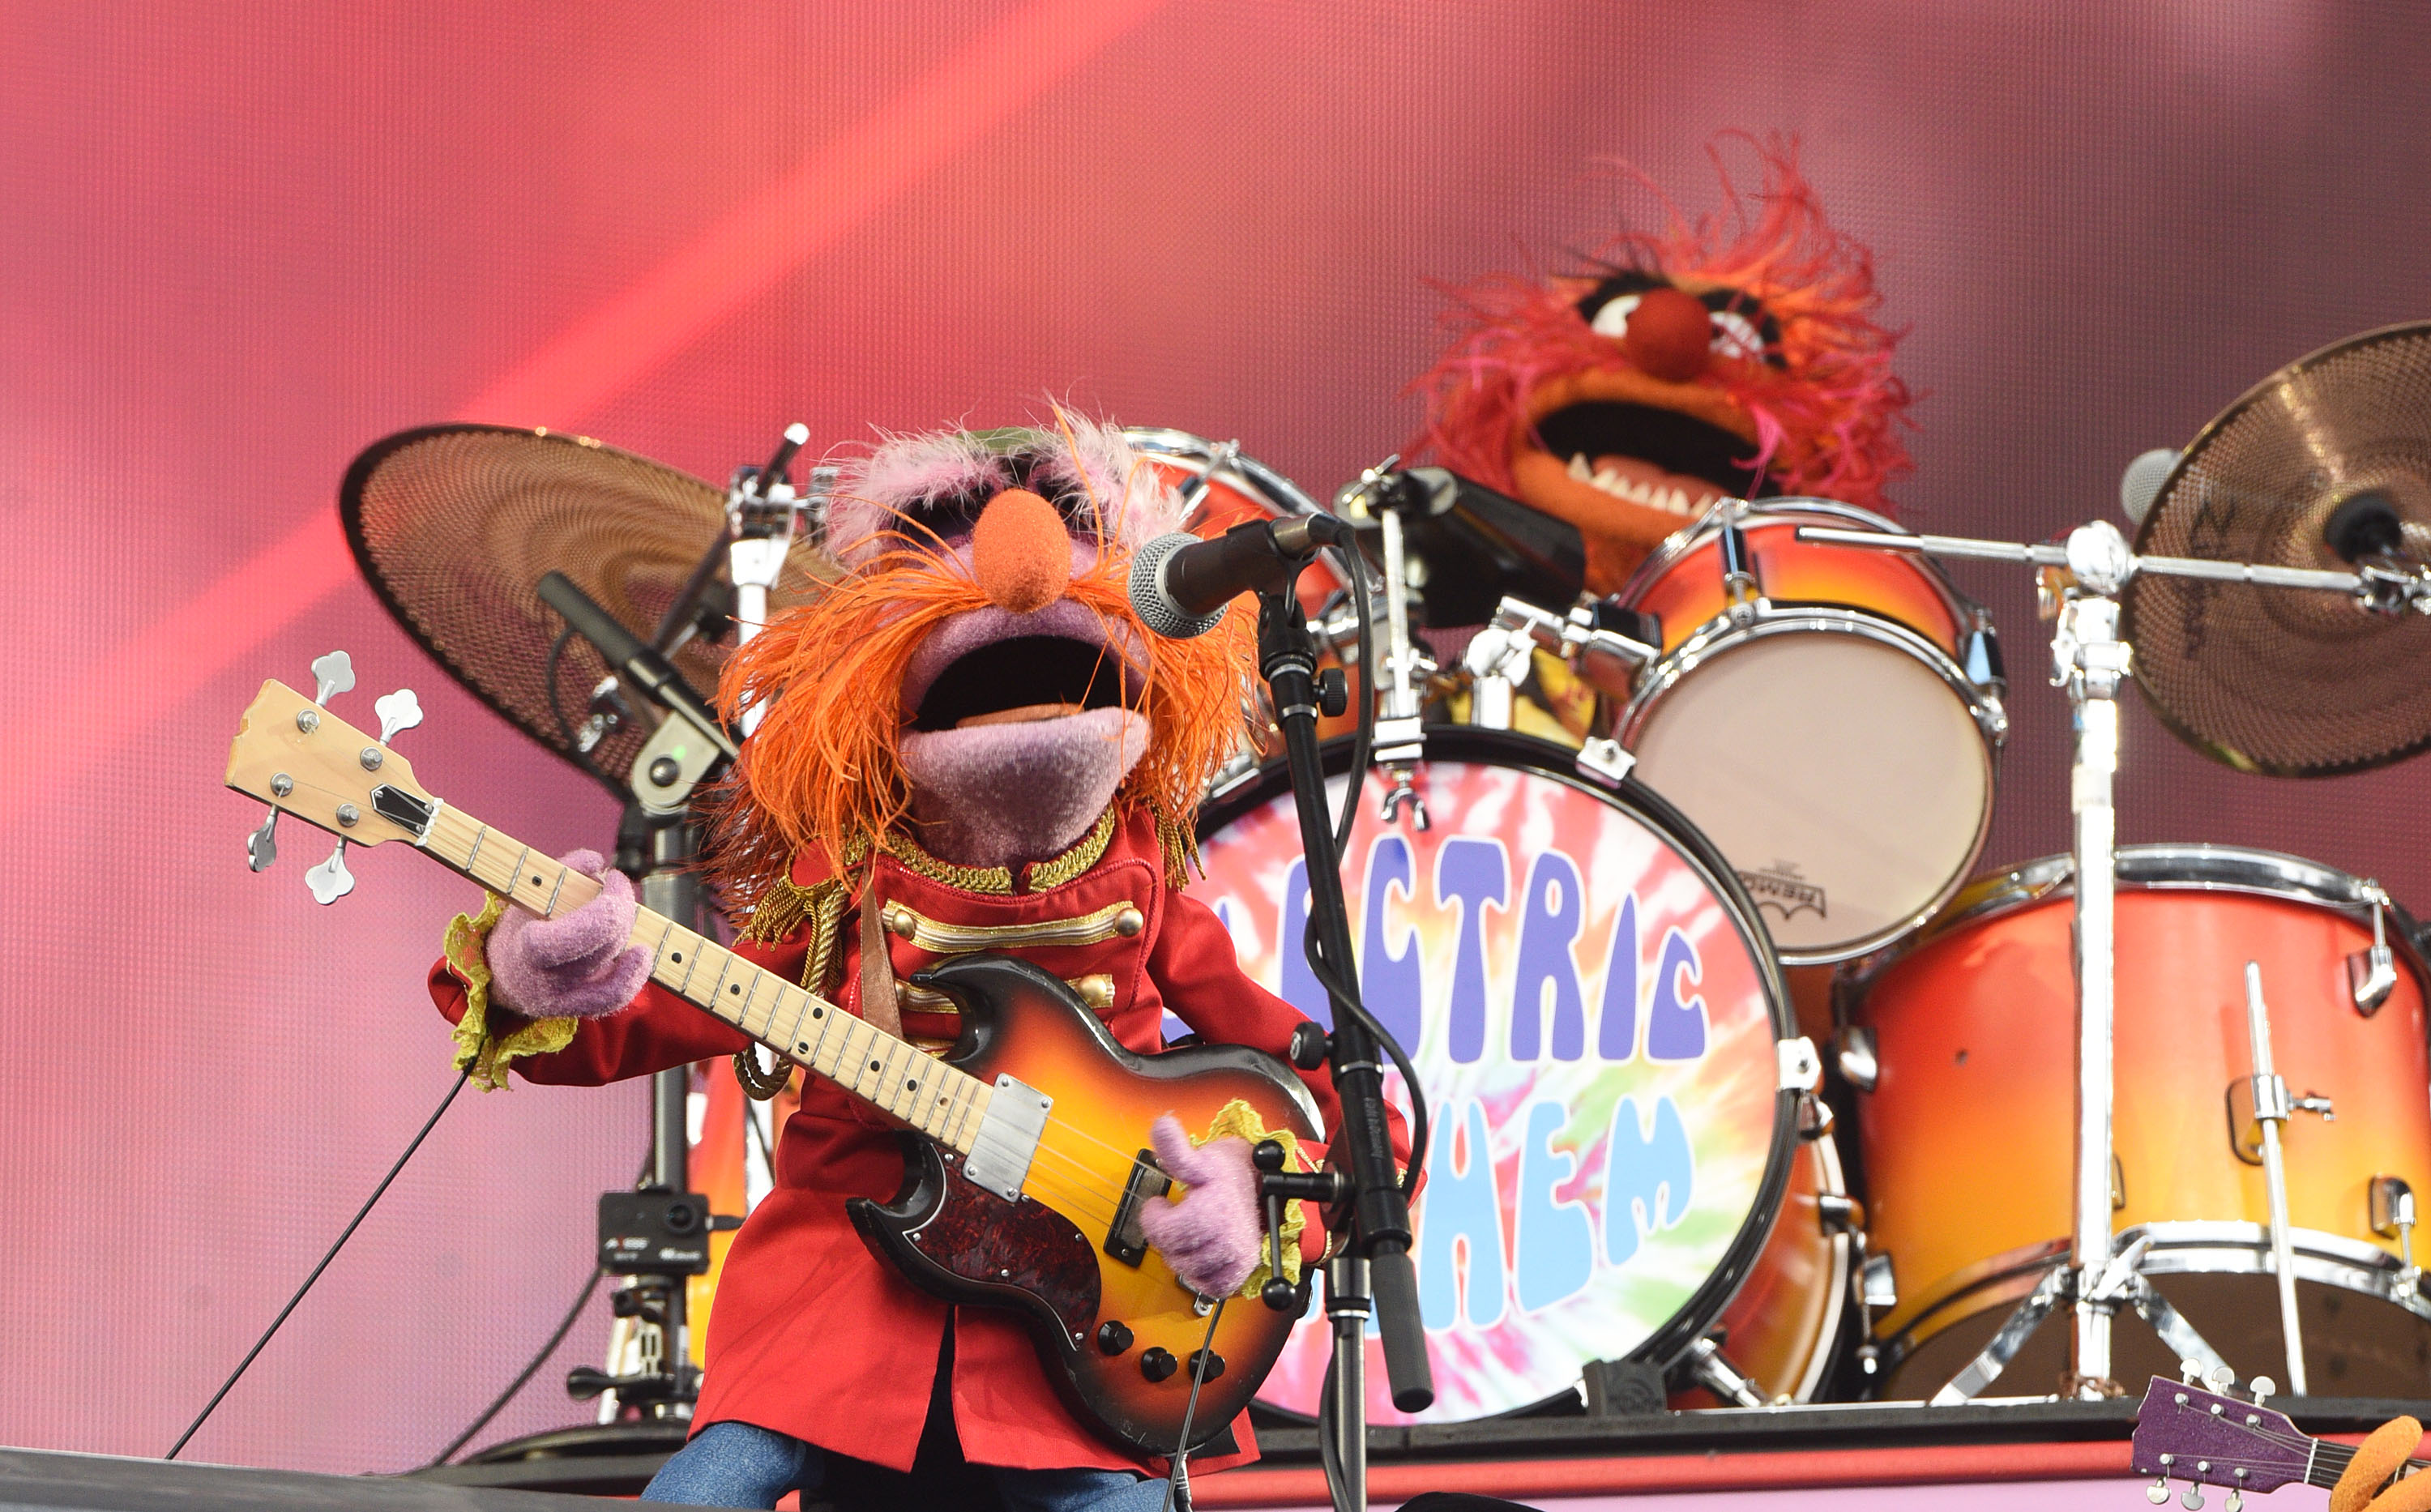 WATCH: The Muppets' house band performed live for the first time ever and it's incredible